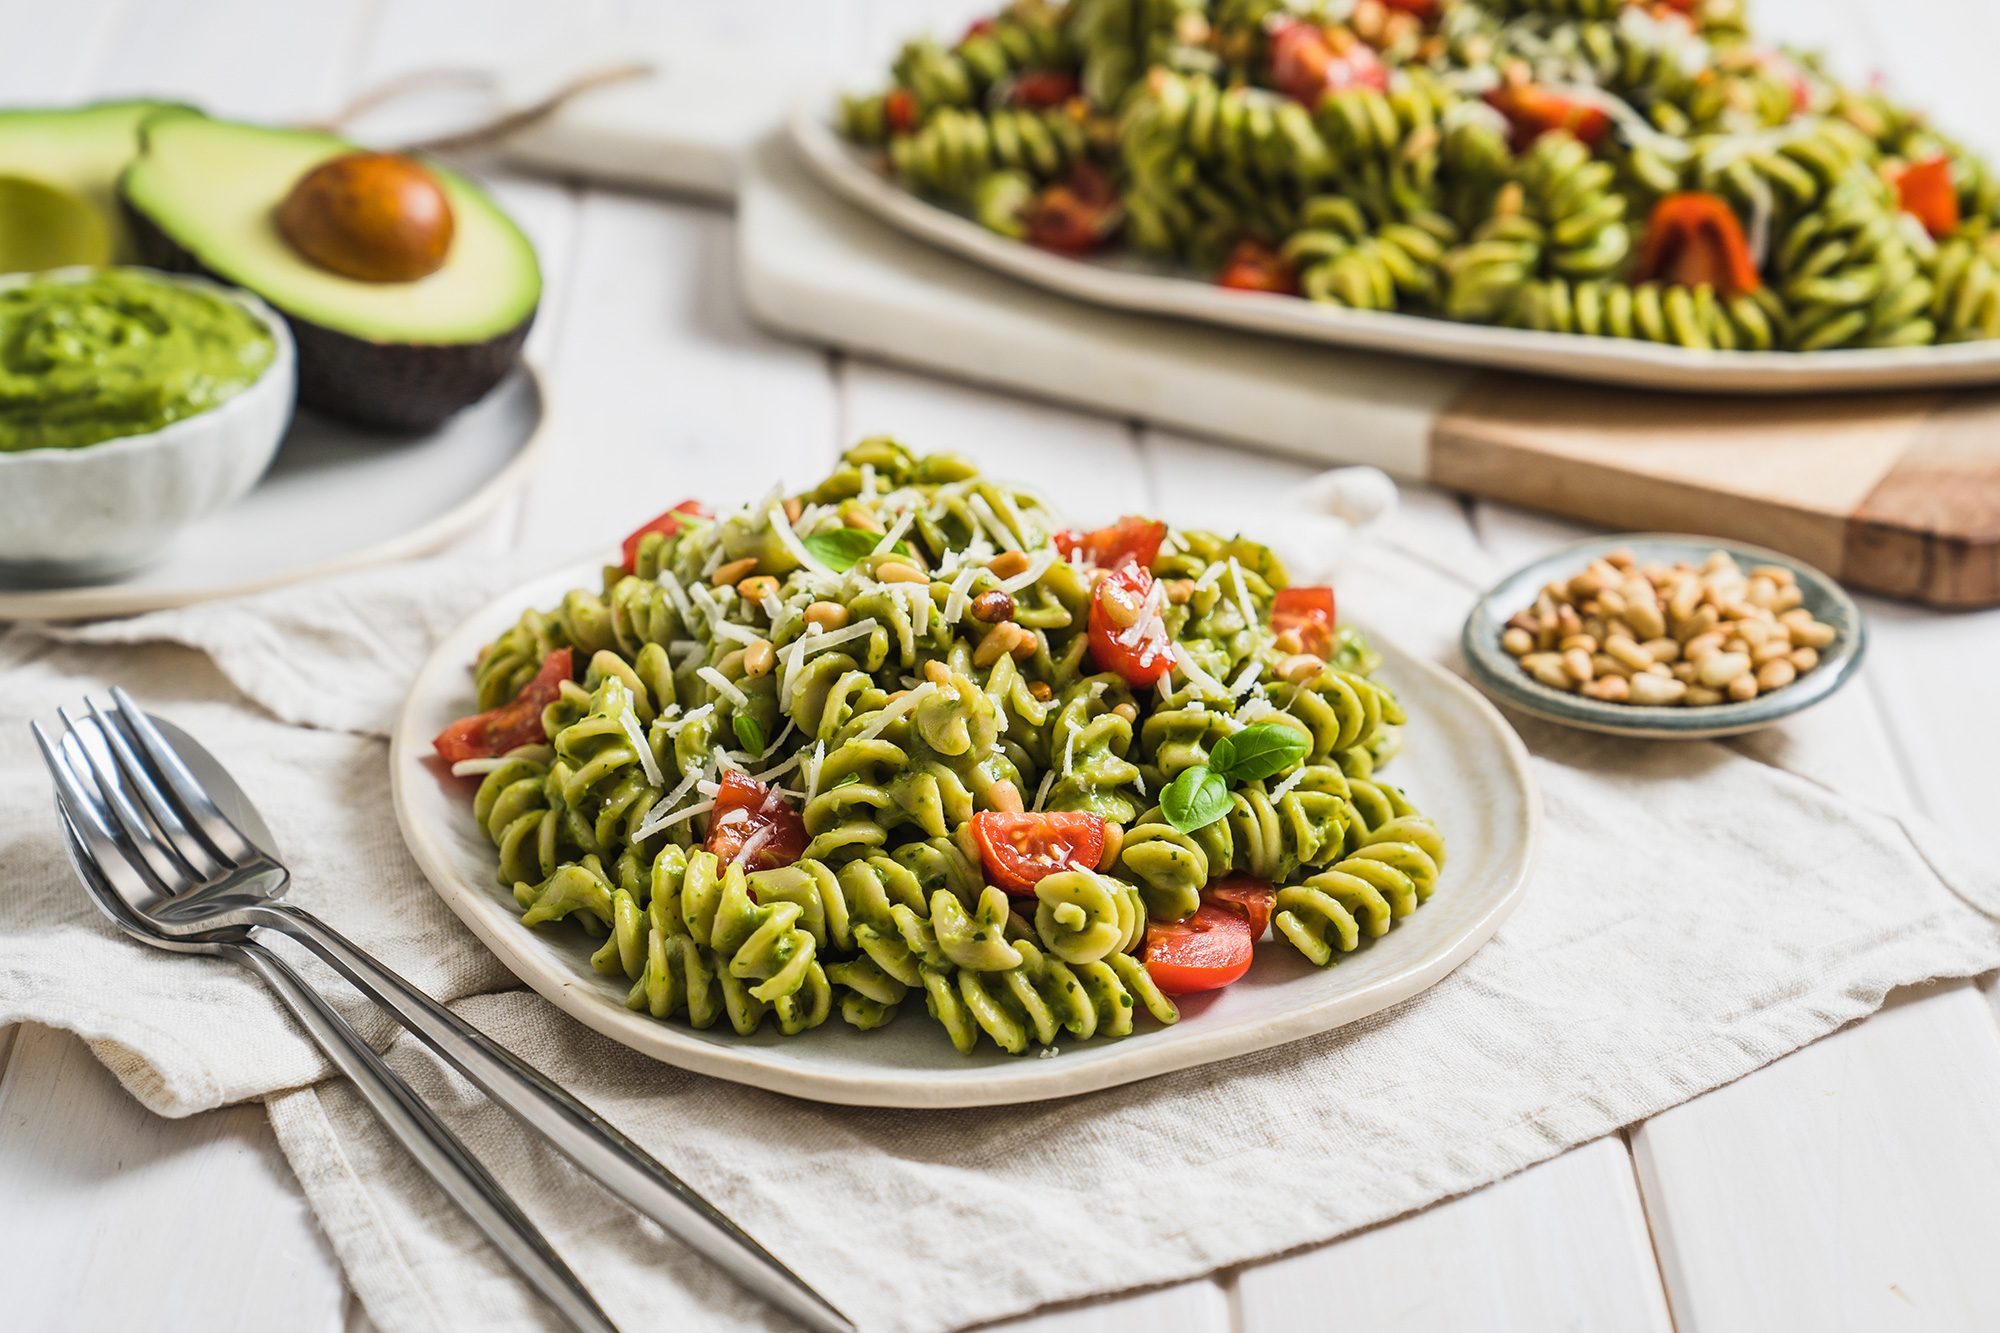 2. Creamy Dreamy Avocado Pasta